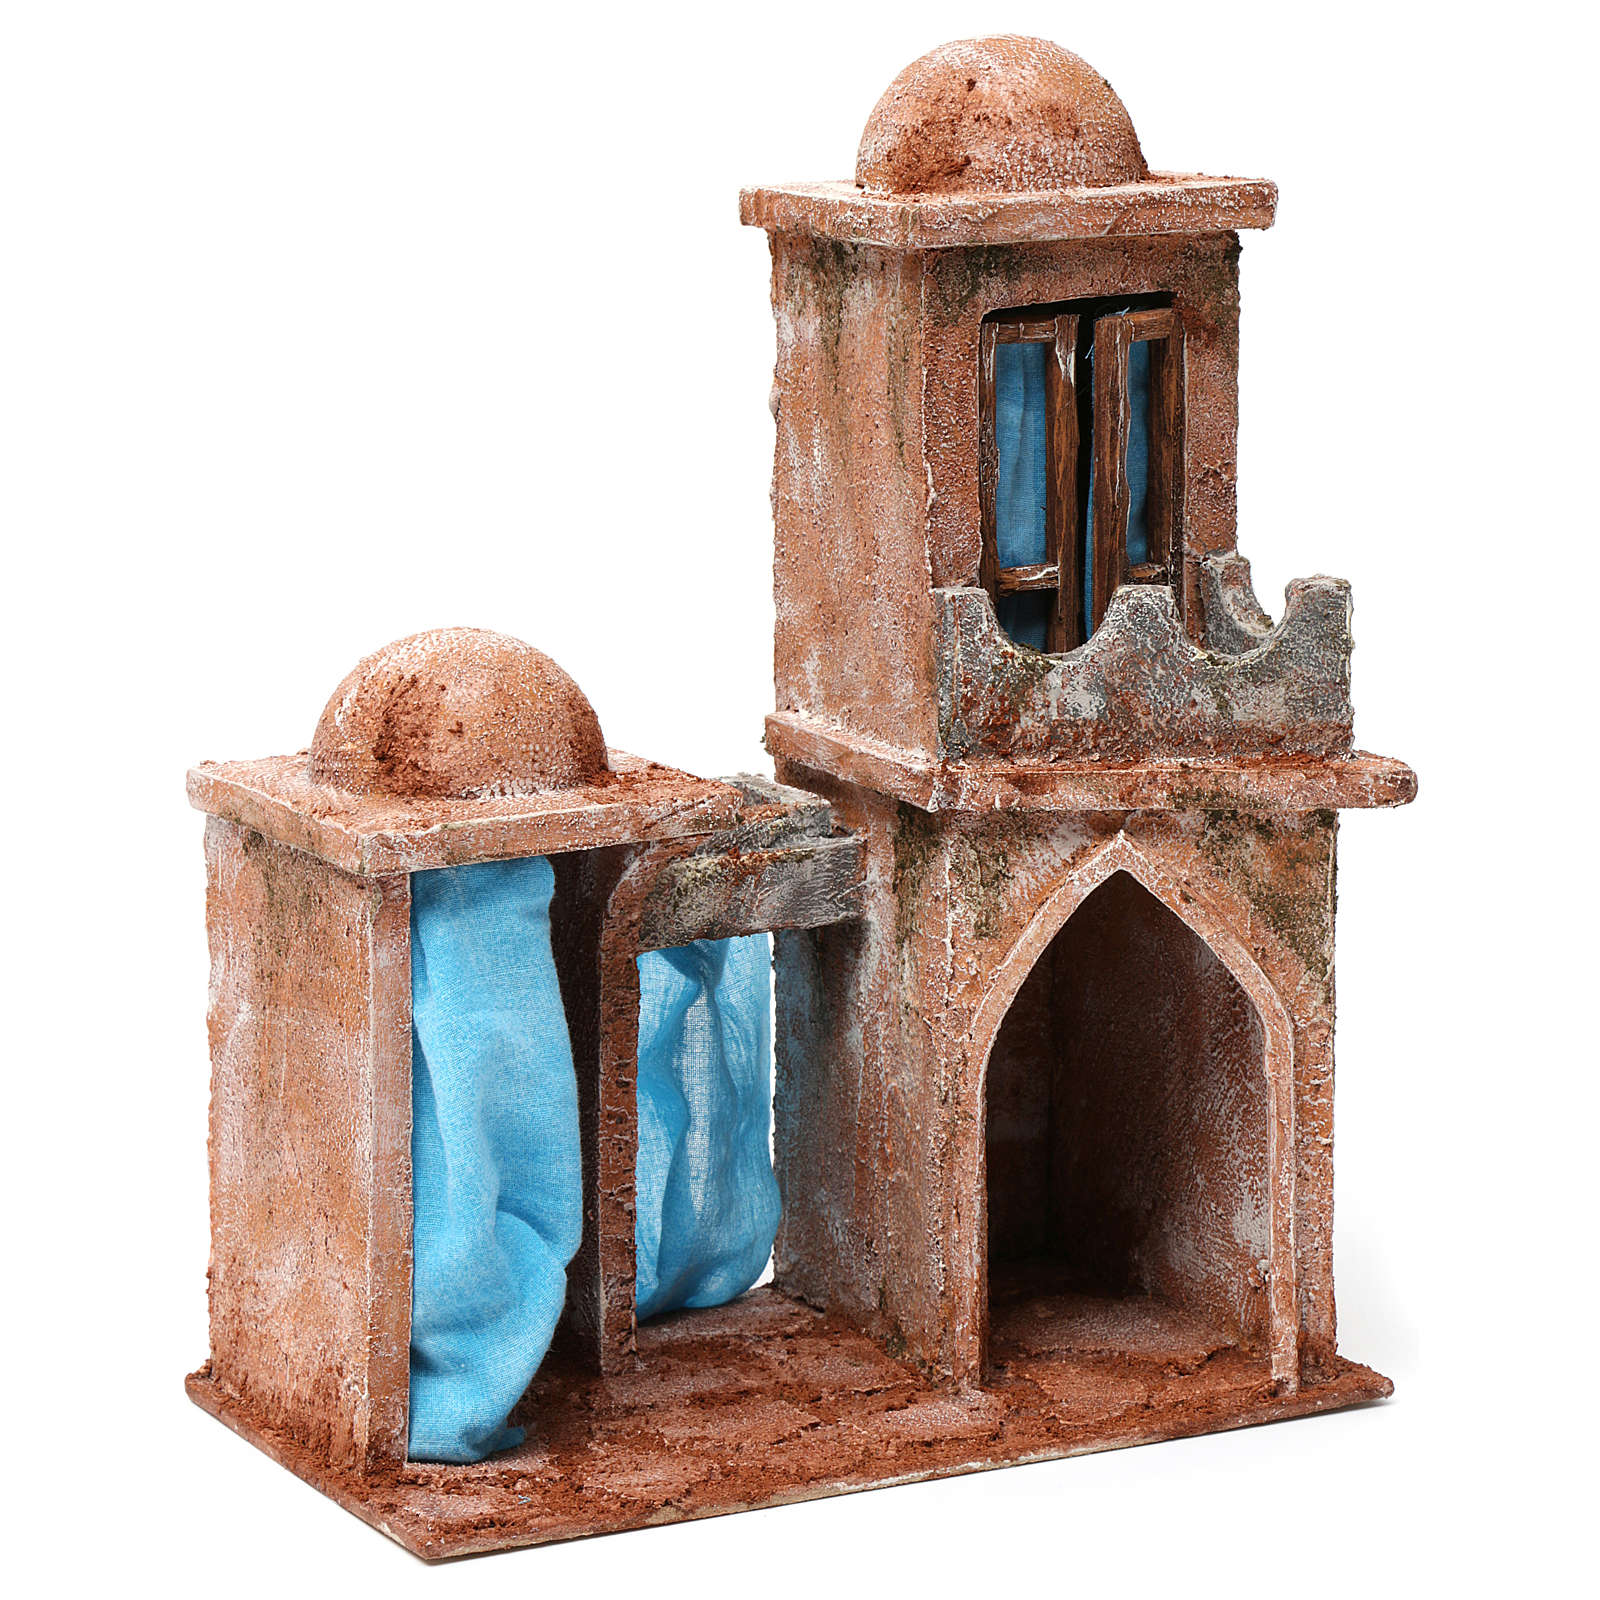 Arab house with domes, pointed arch and blue curtains for 10 cm nativity scene 4